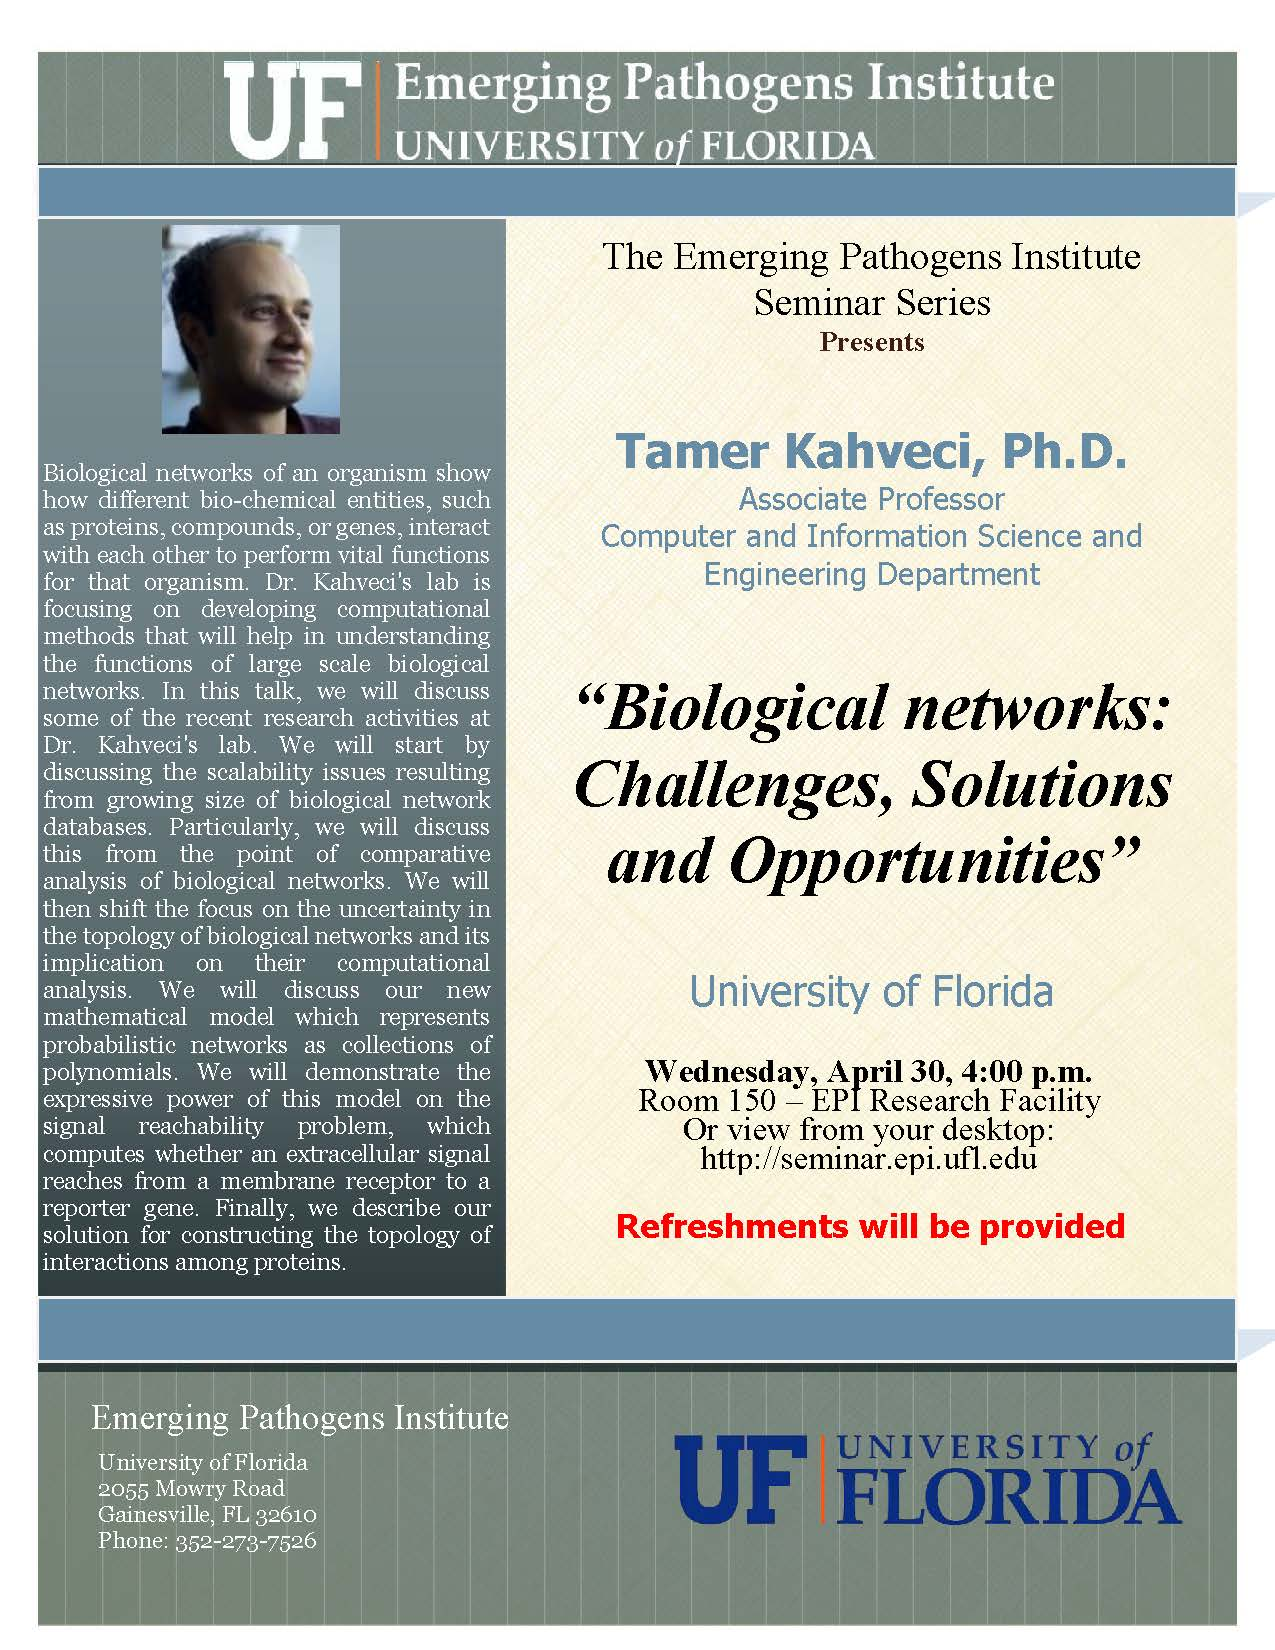 Biological networks: Challenges, Solutions and Opportunities